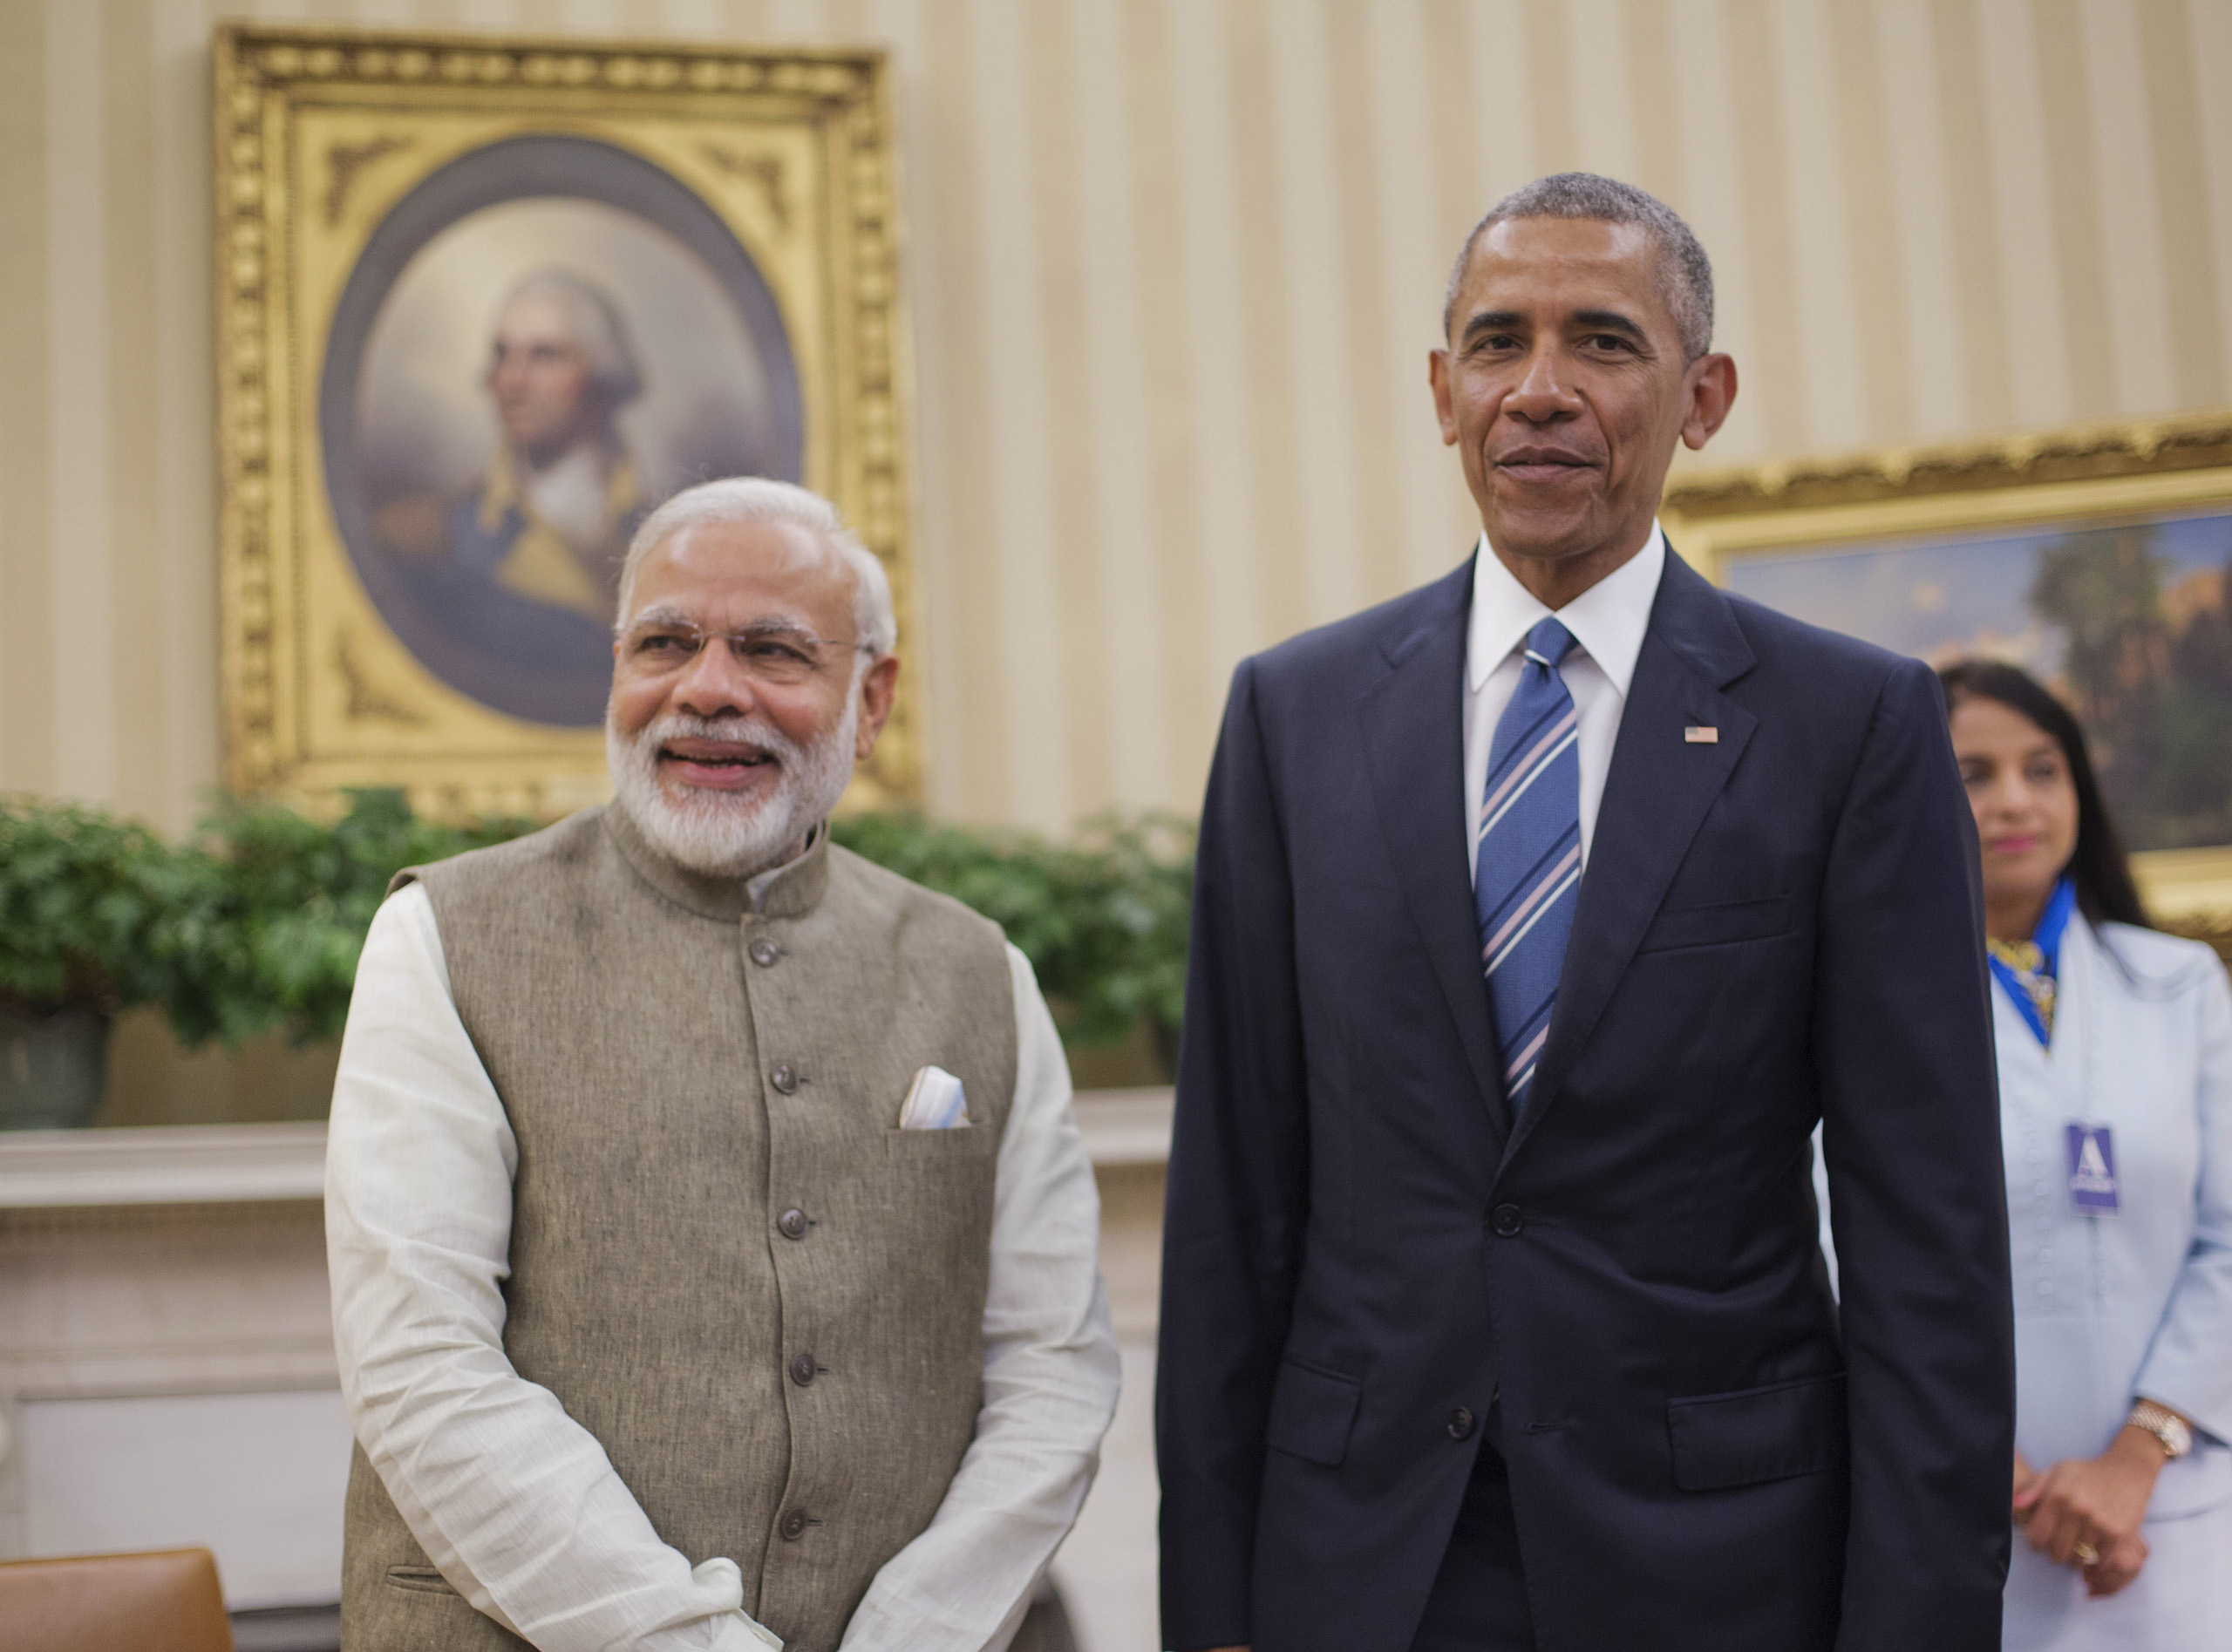 President Barack Obama meets with Indian Prime Minister India Narendra Modi in the Oval Office of the White House in Washington, D.C.,  June 7, 2016.